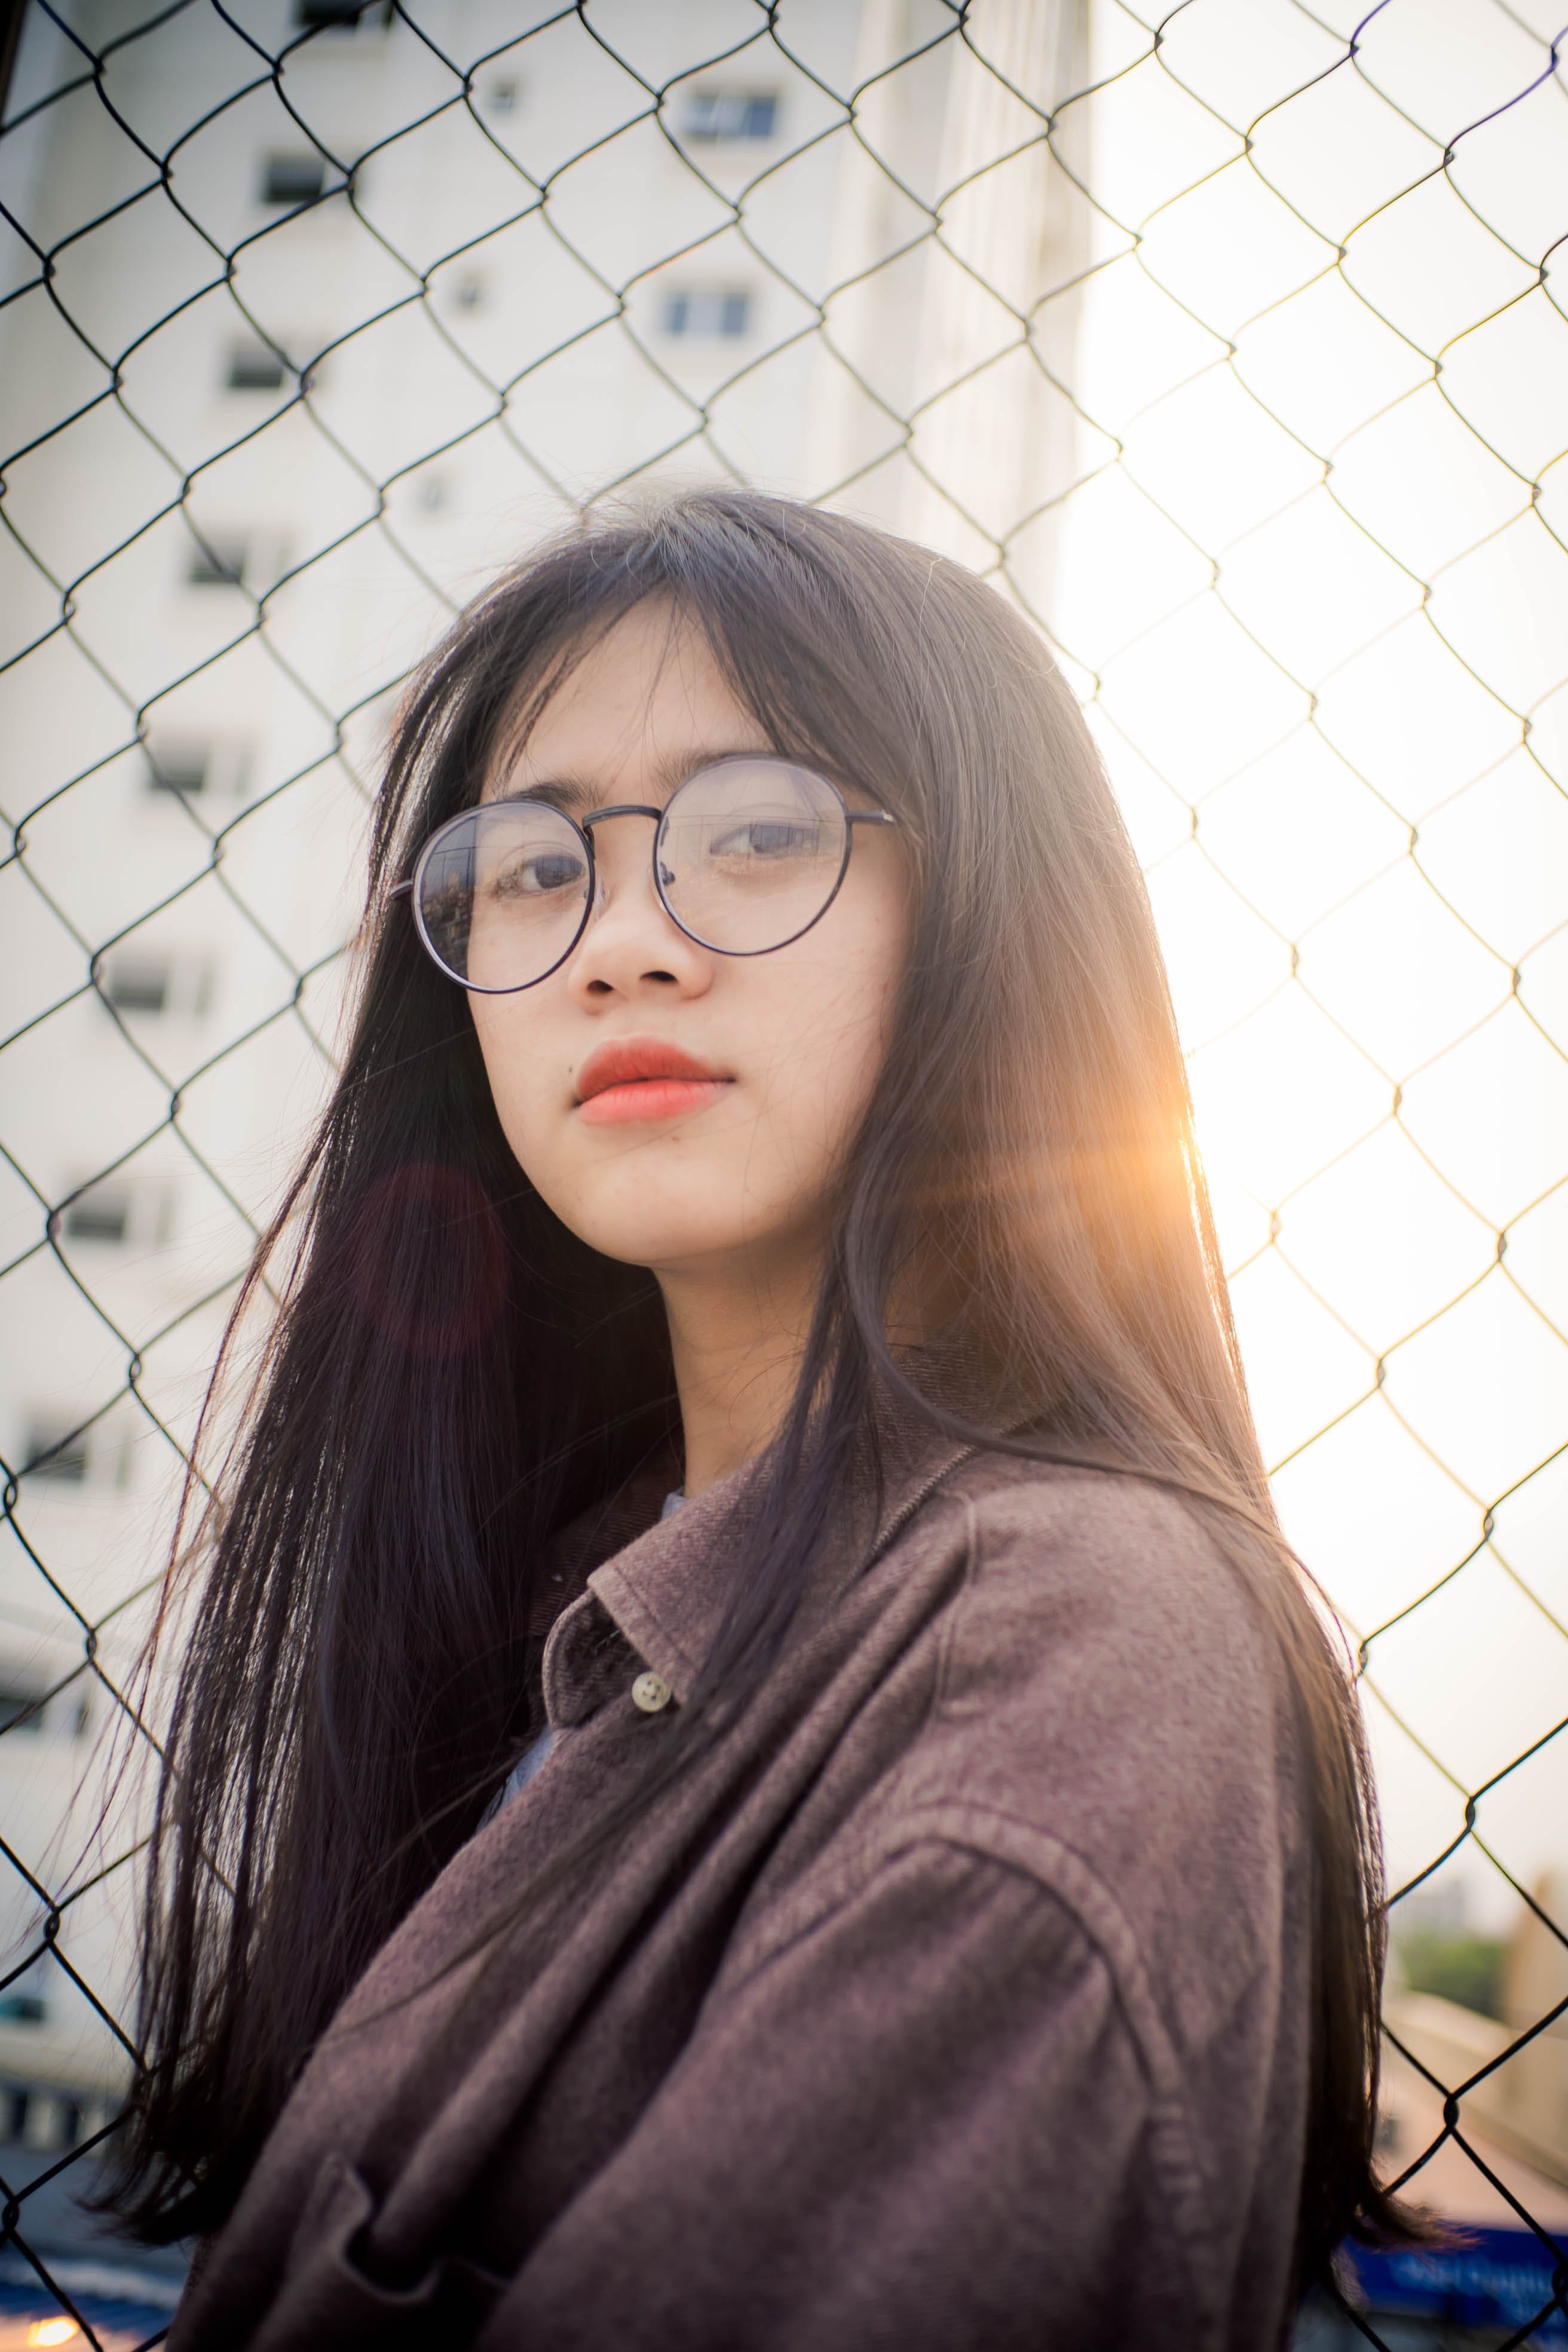 Photo of Woman in Glasses Standing by Chain Link Fence